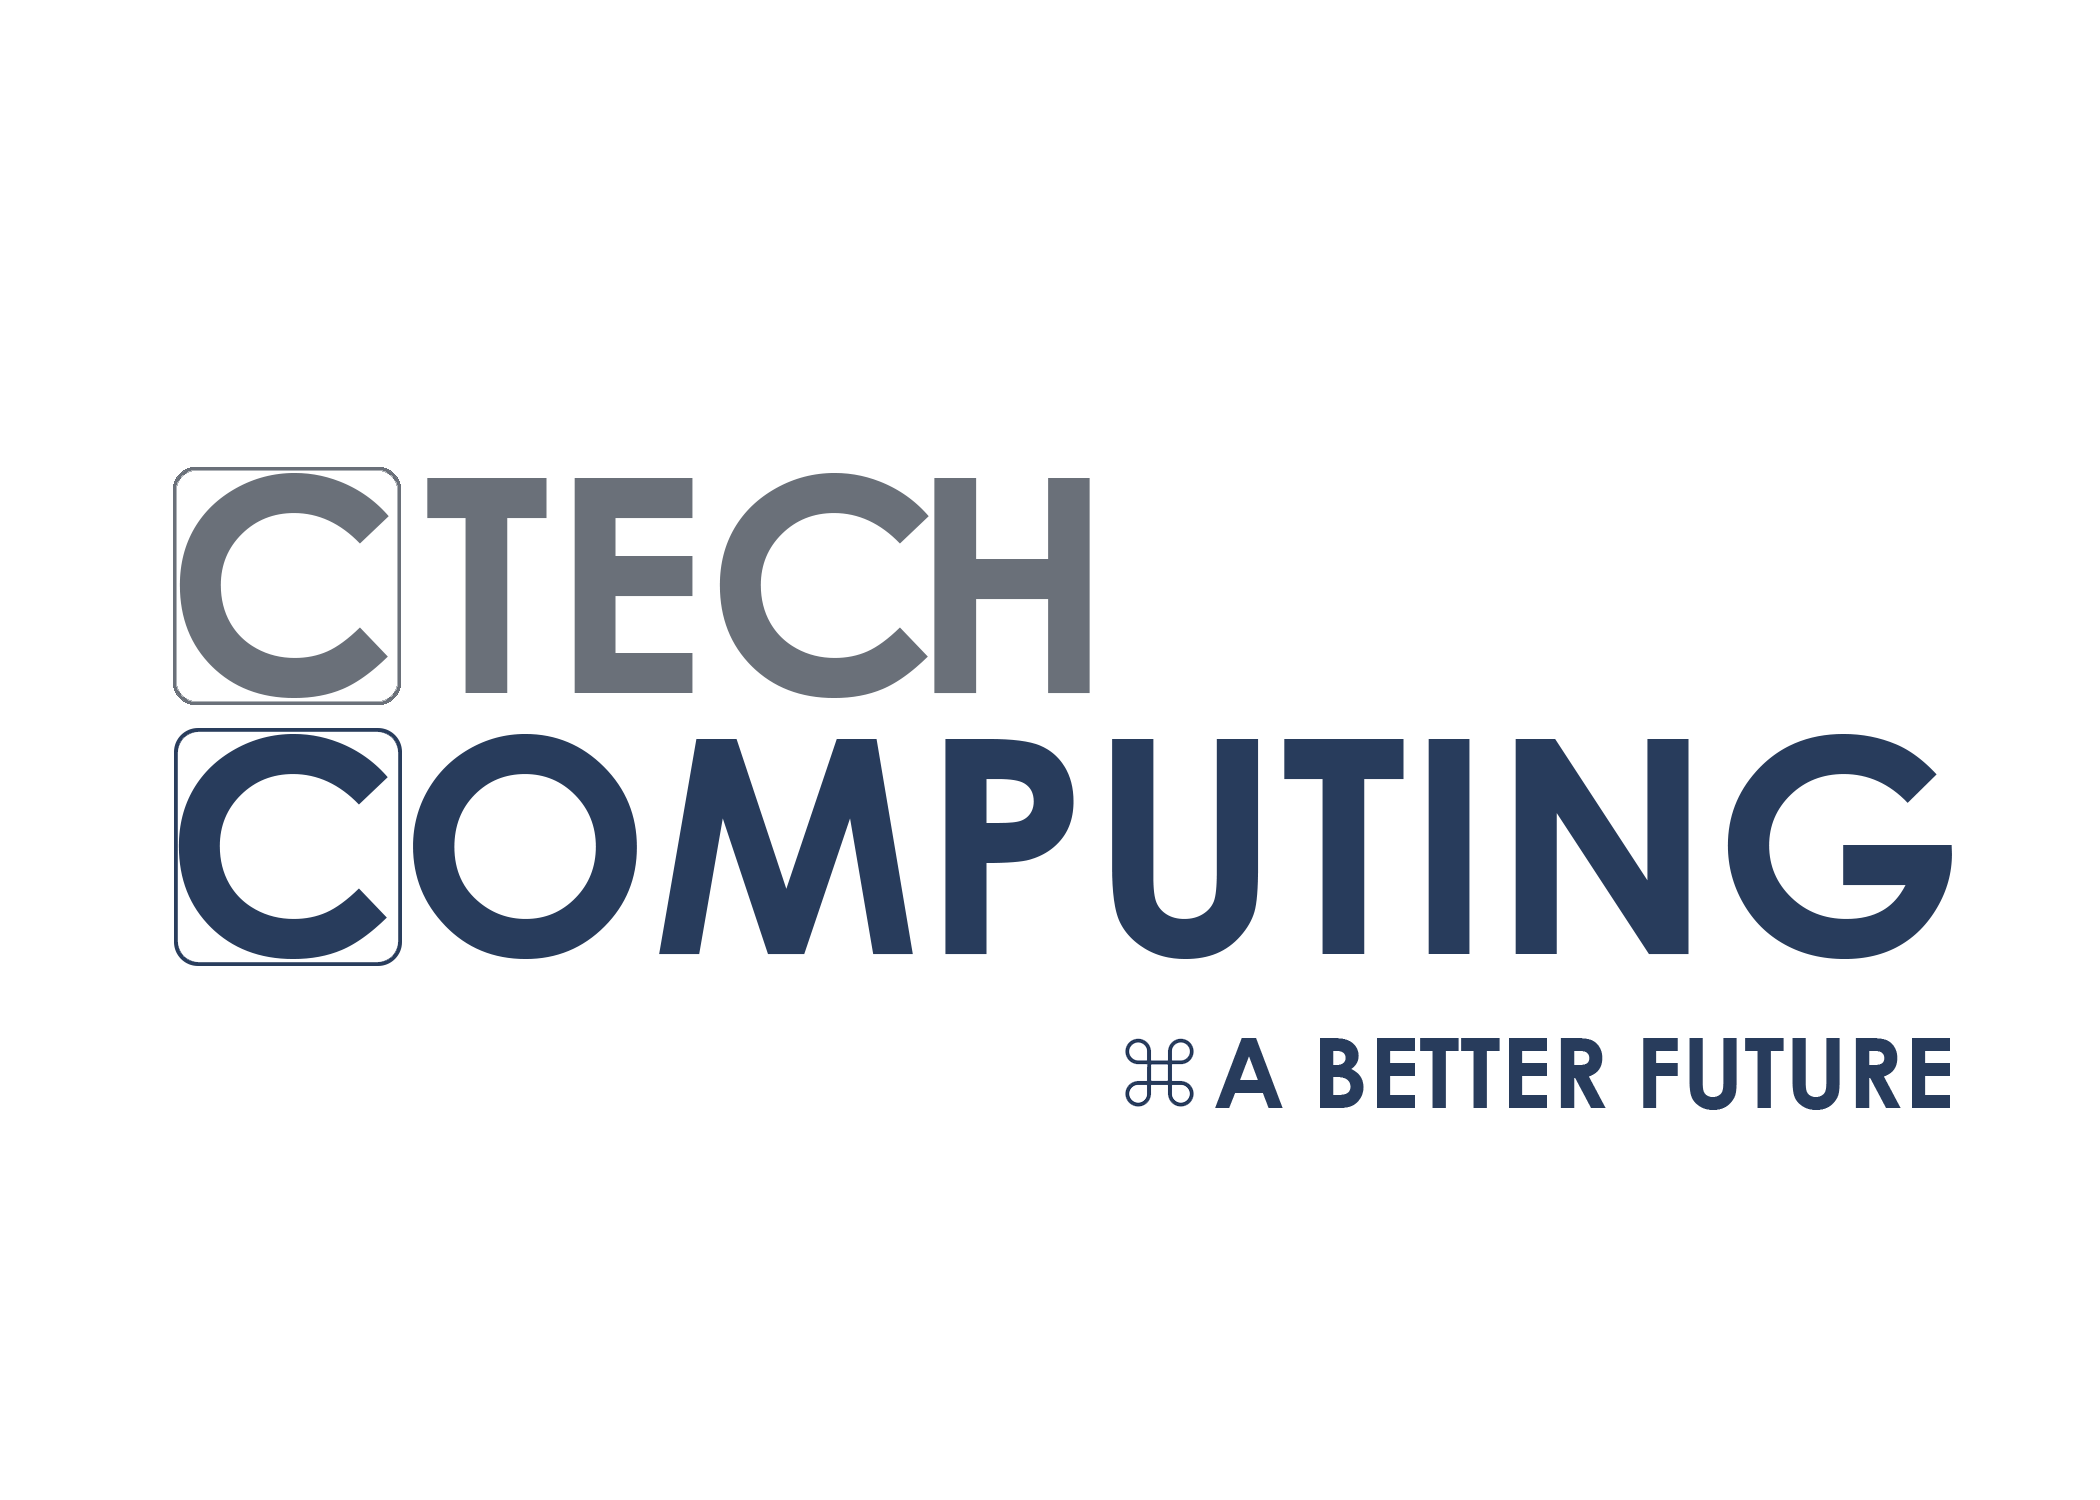 c-tech-computing-llc